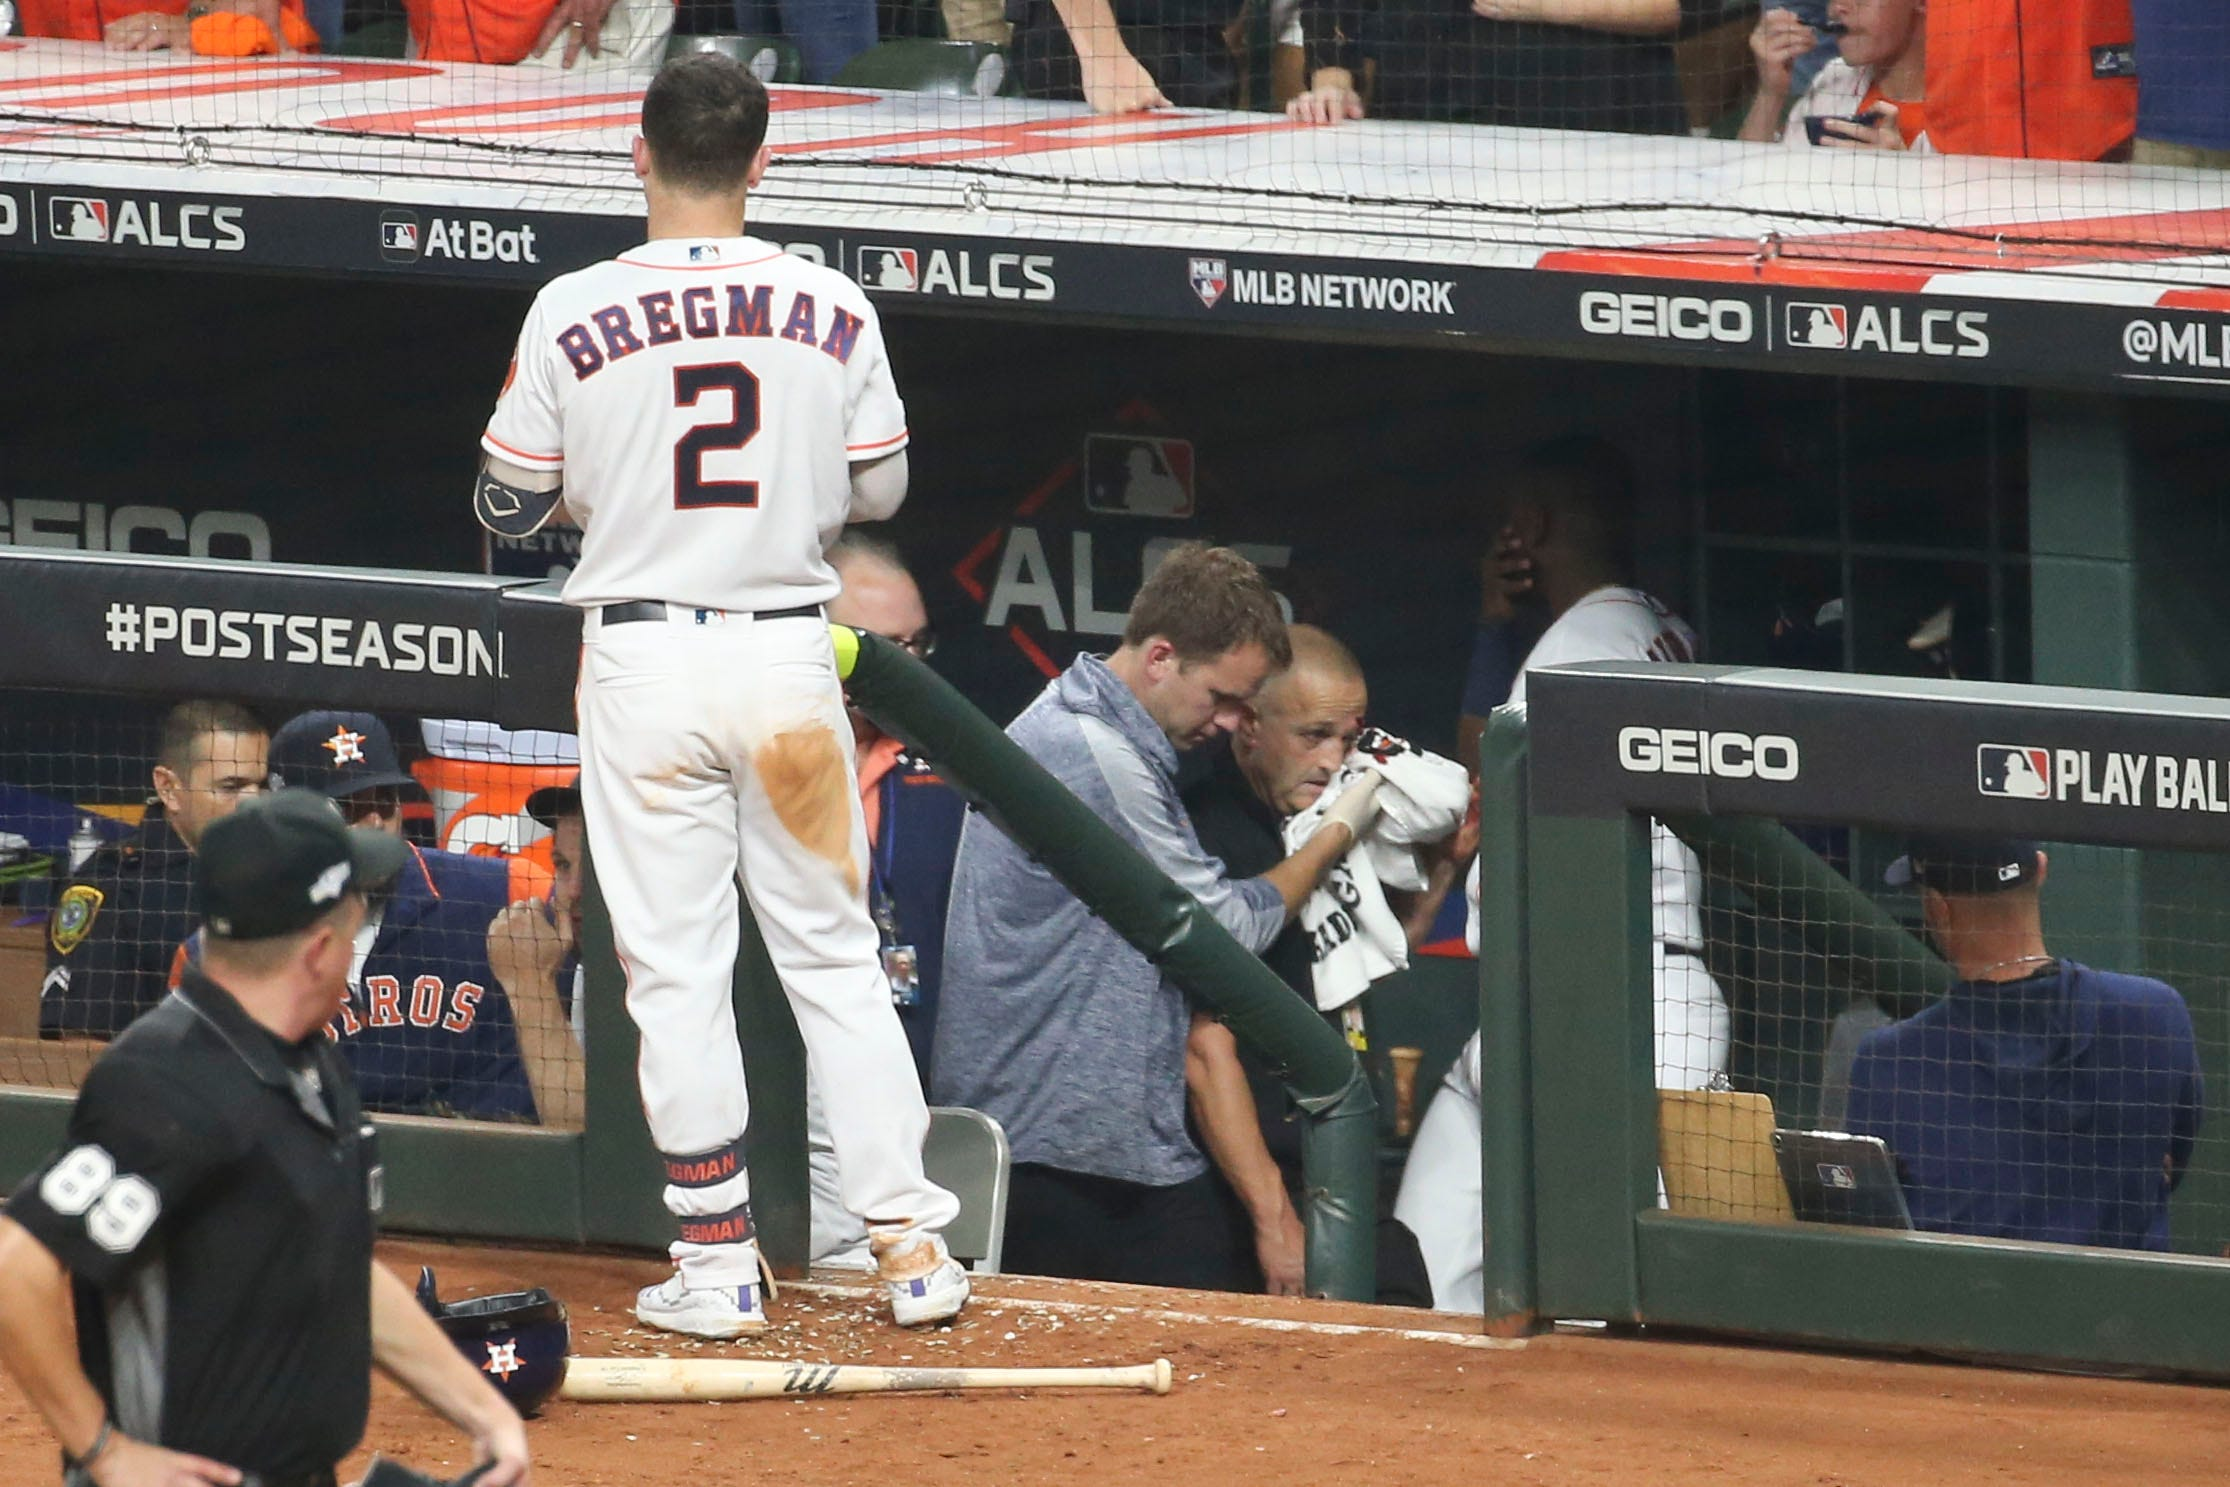 Foul ball drills paramedic in the Astros dugout during Game 2 of the ALCS